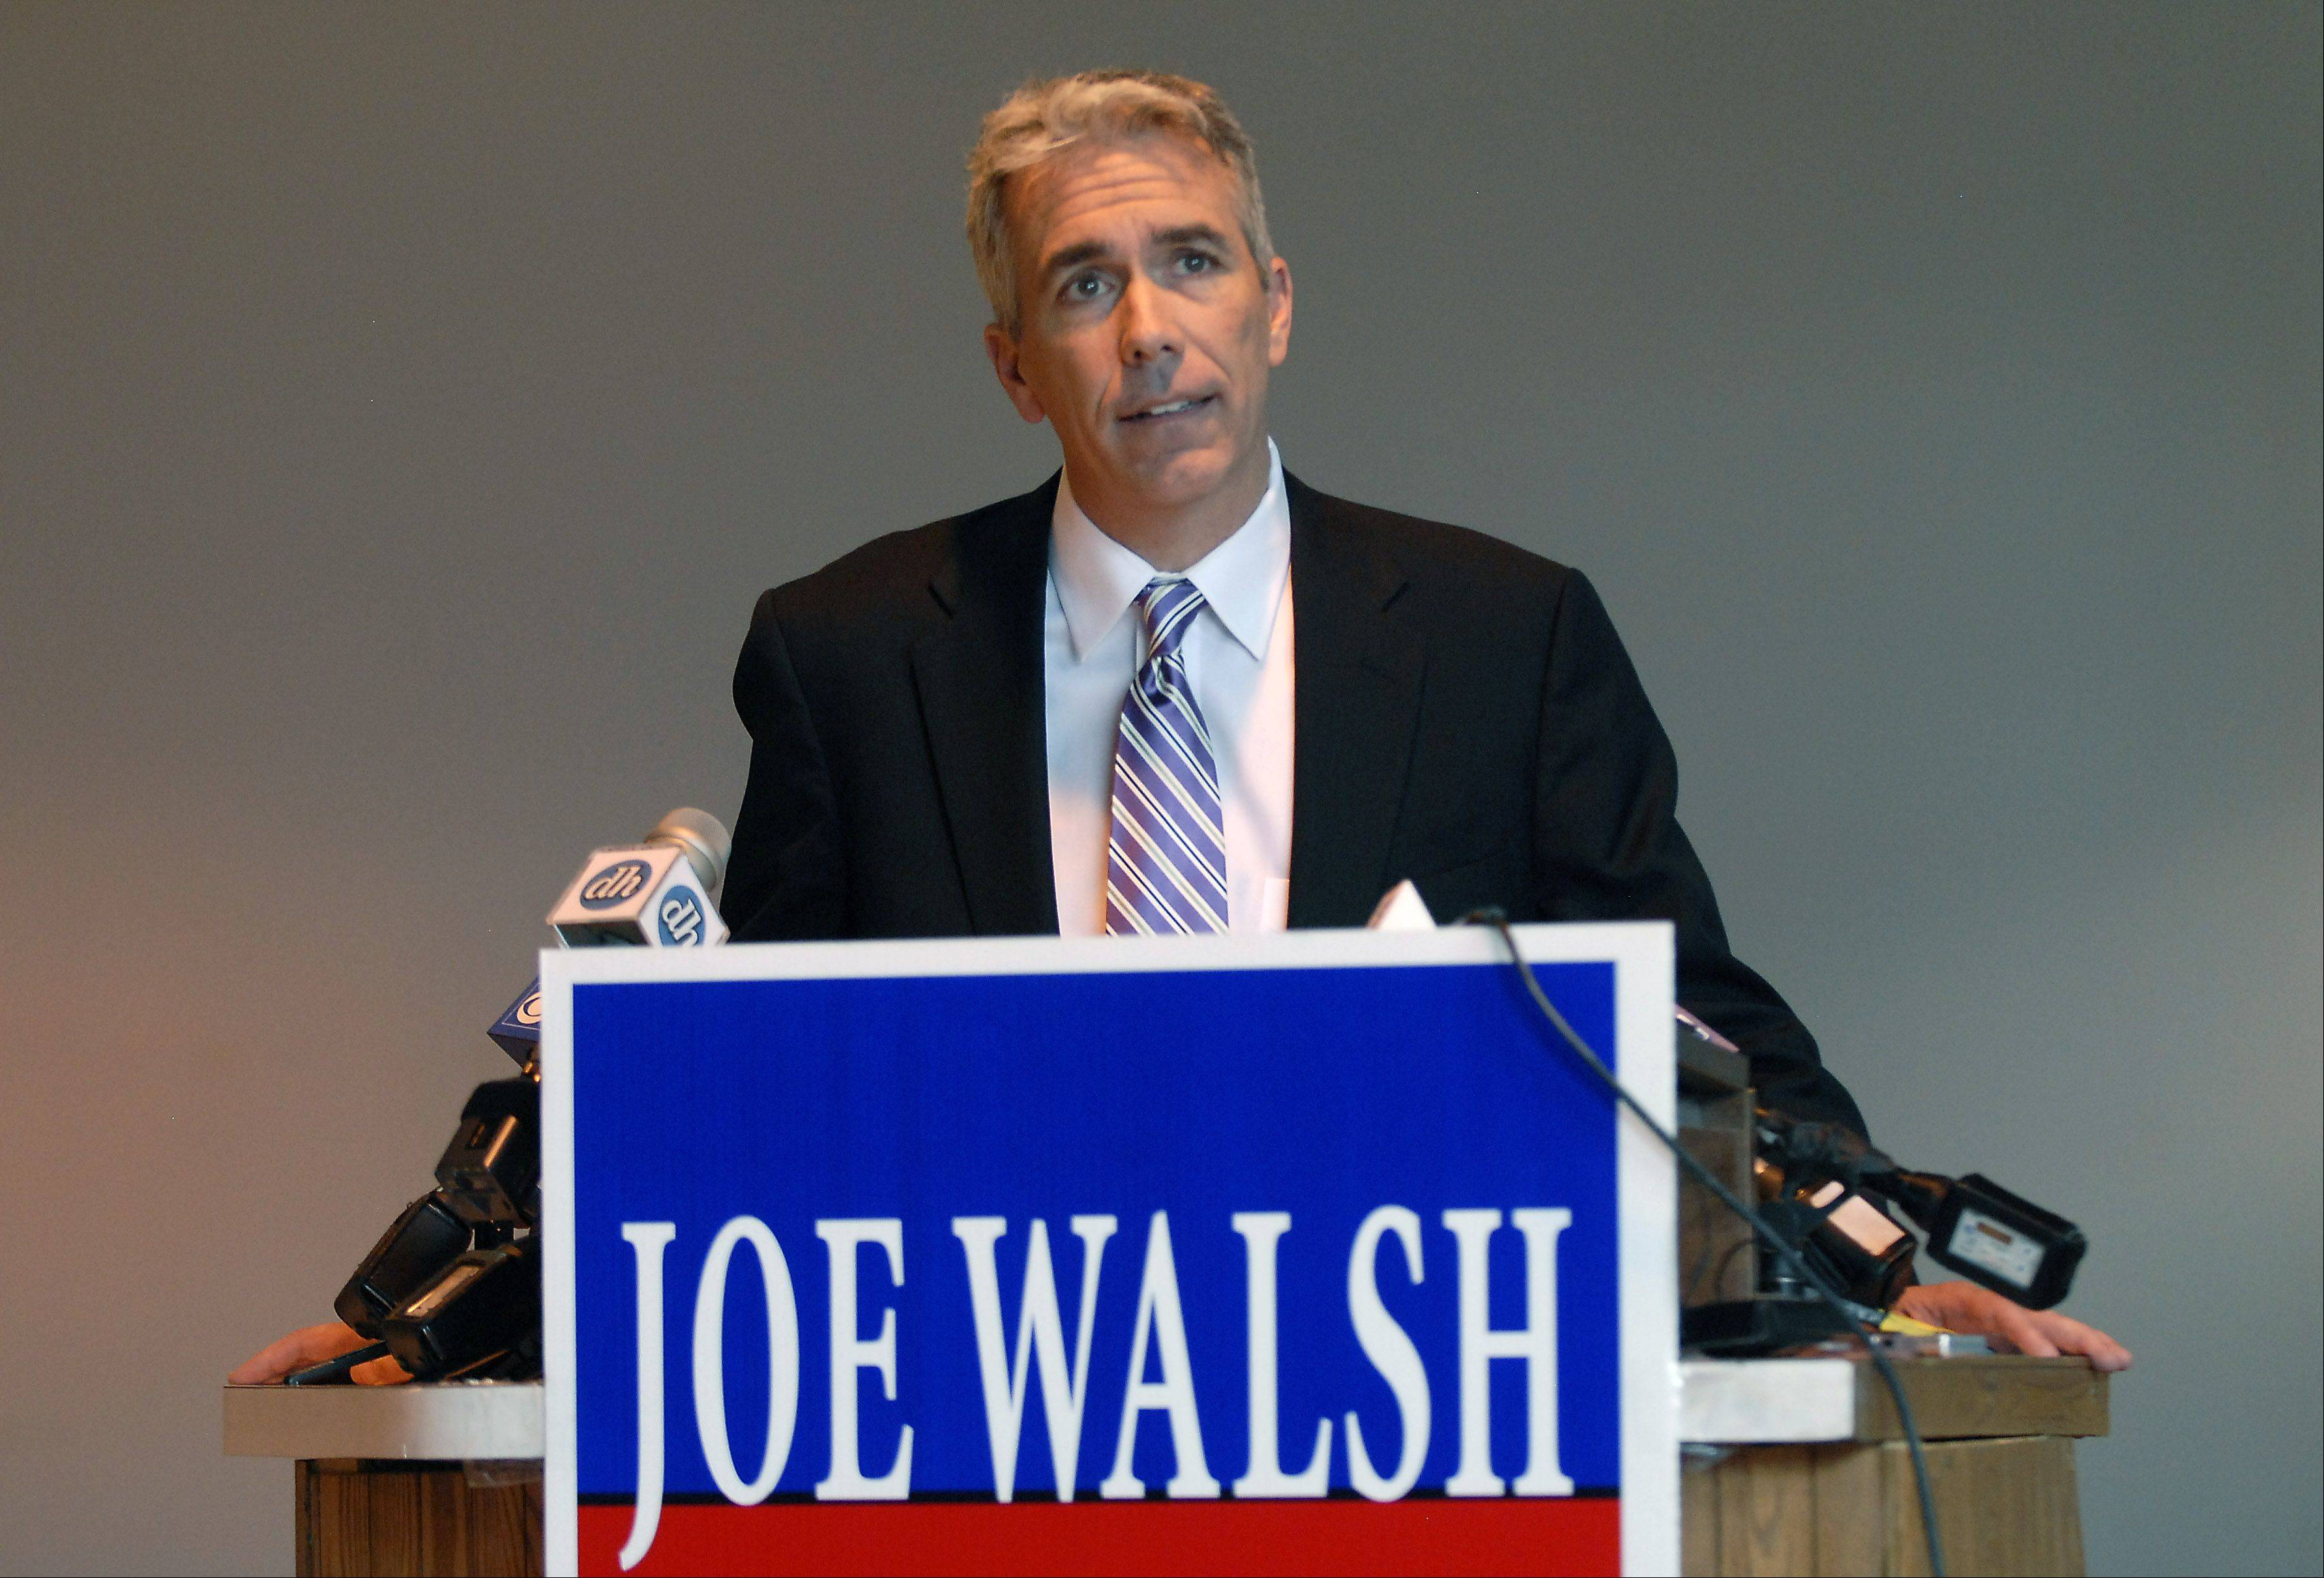 Congressman Joe Walsh reaffirms his pro-life stance during a press conference at a warehouse in Elk Grove Village Friday afternoon.